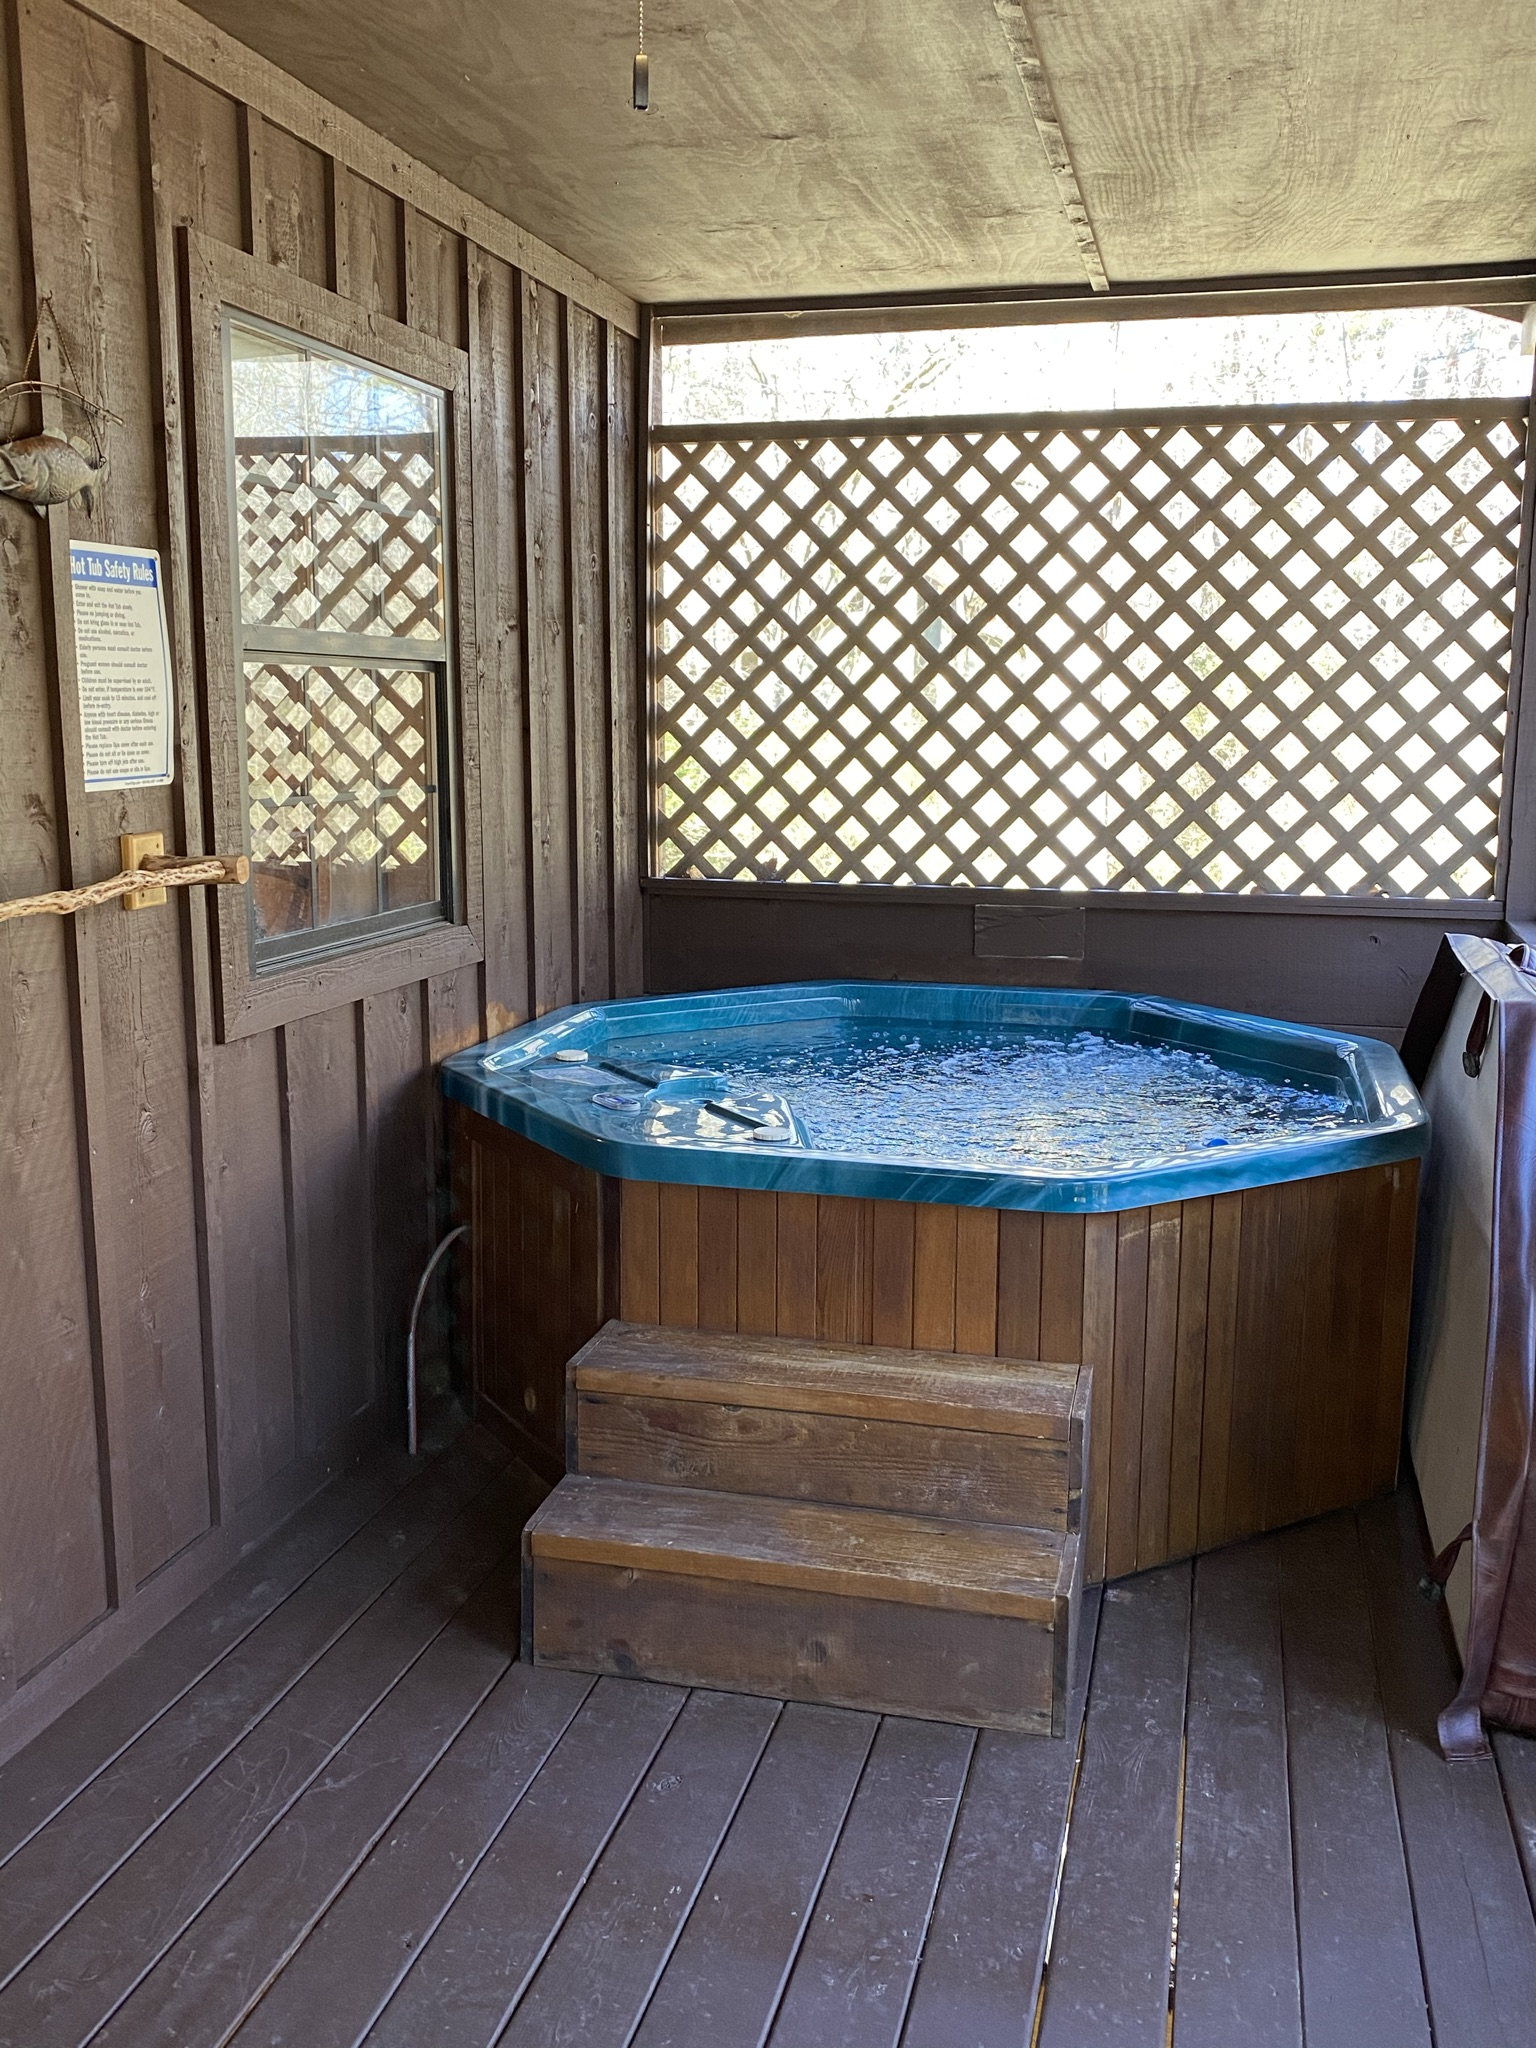 After a day of hiking, relax in the private hot tub.